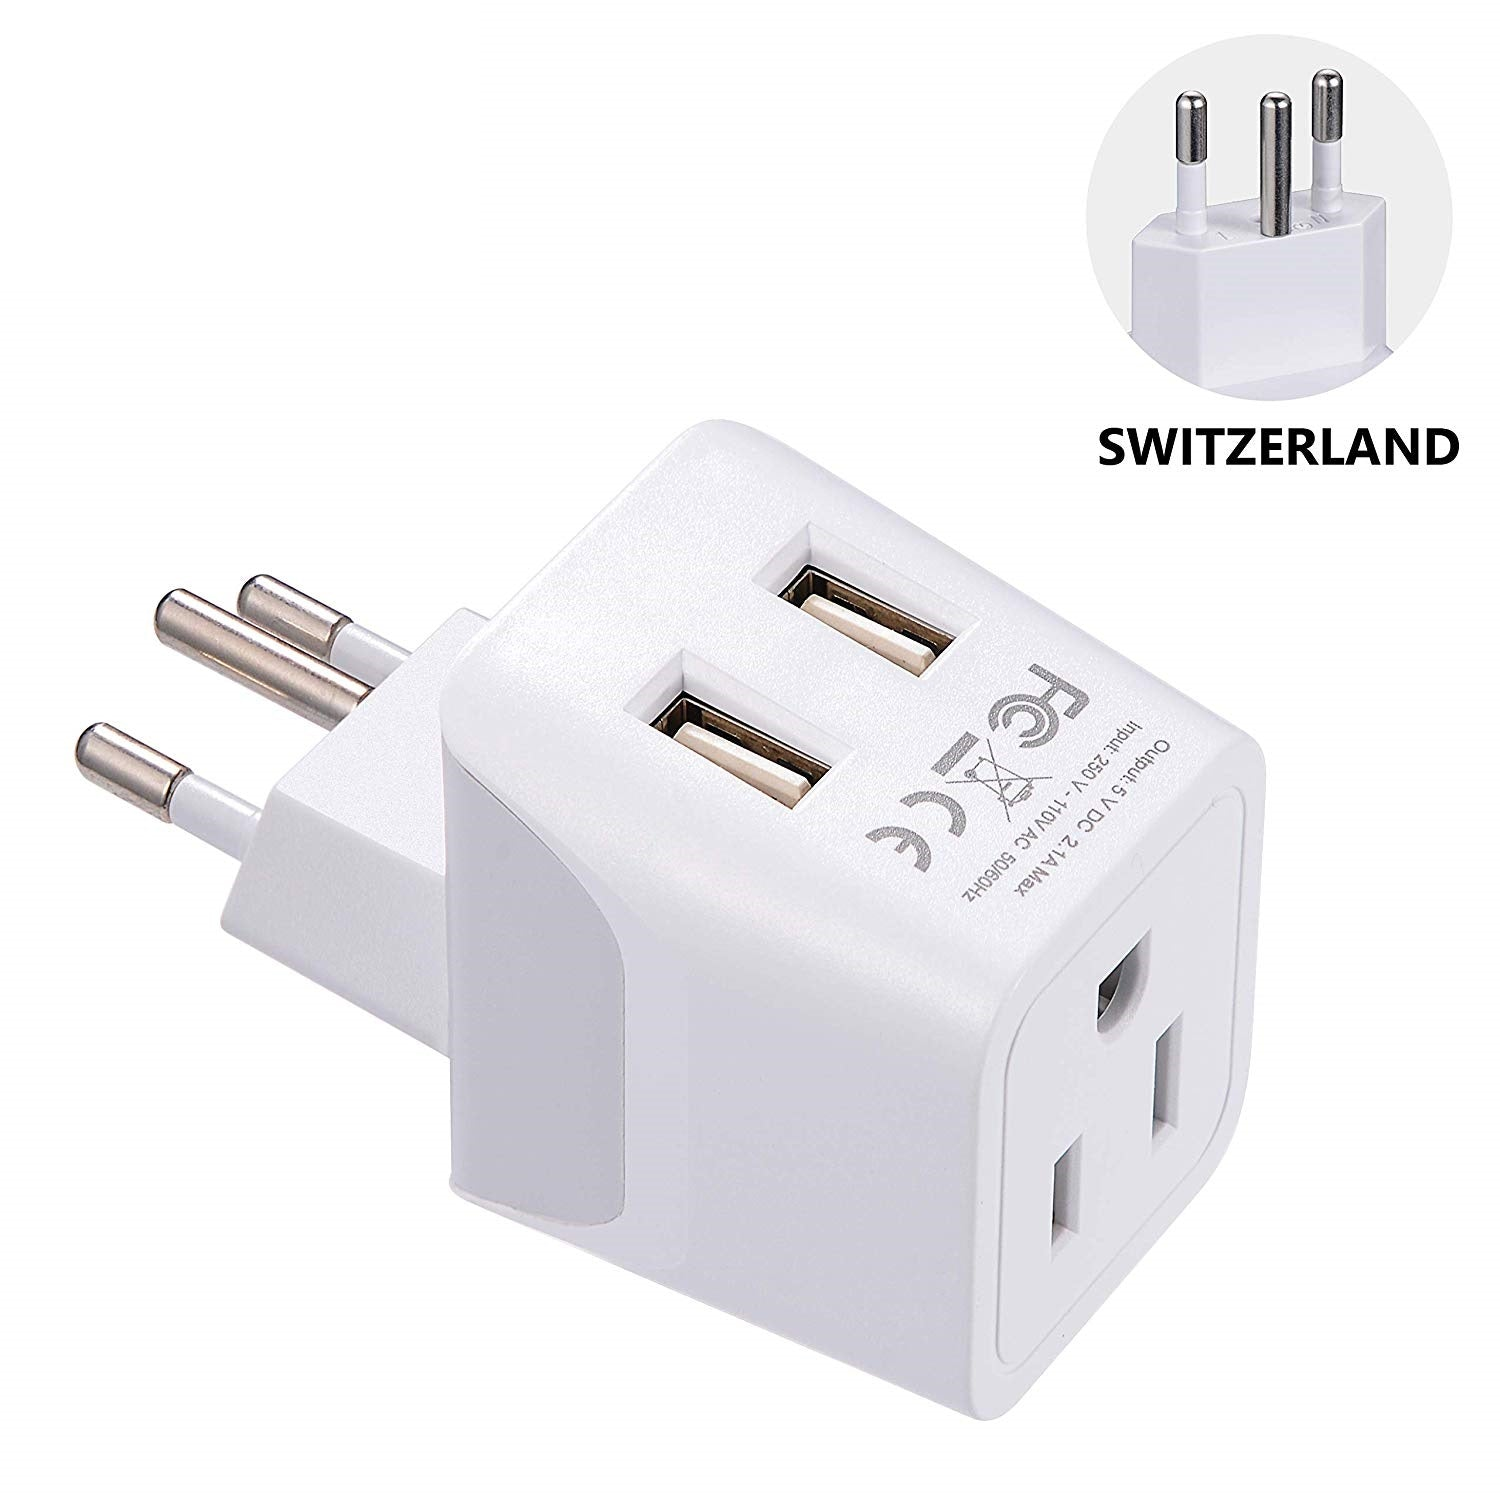 European Travel Adapter - Type C, E/F - 2 Pack (CTU-9-9C-PK)